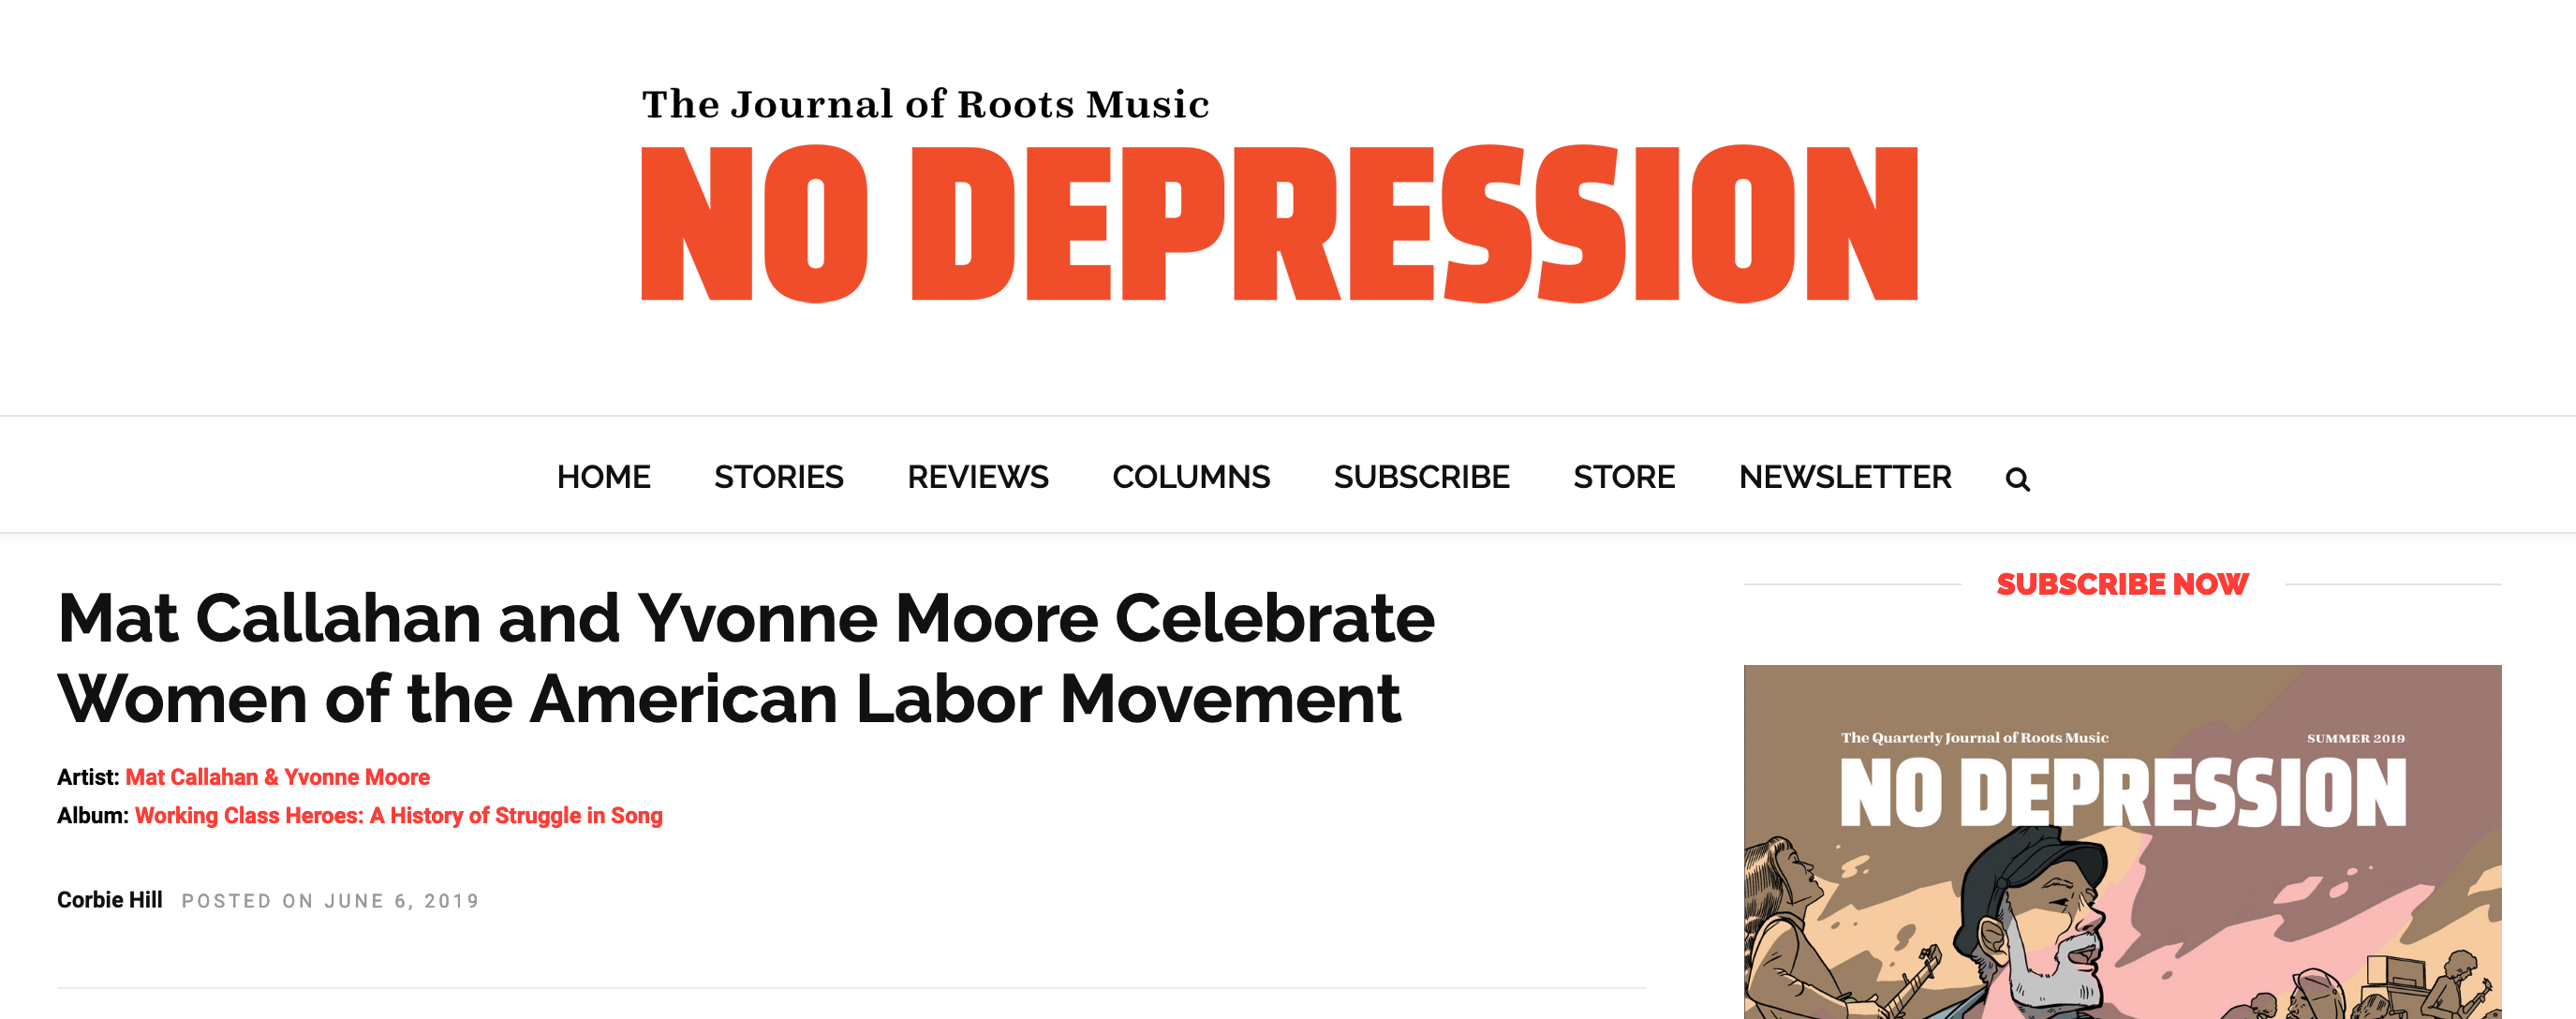 Review in The Journal of Roots Music